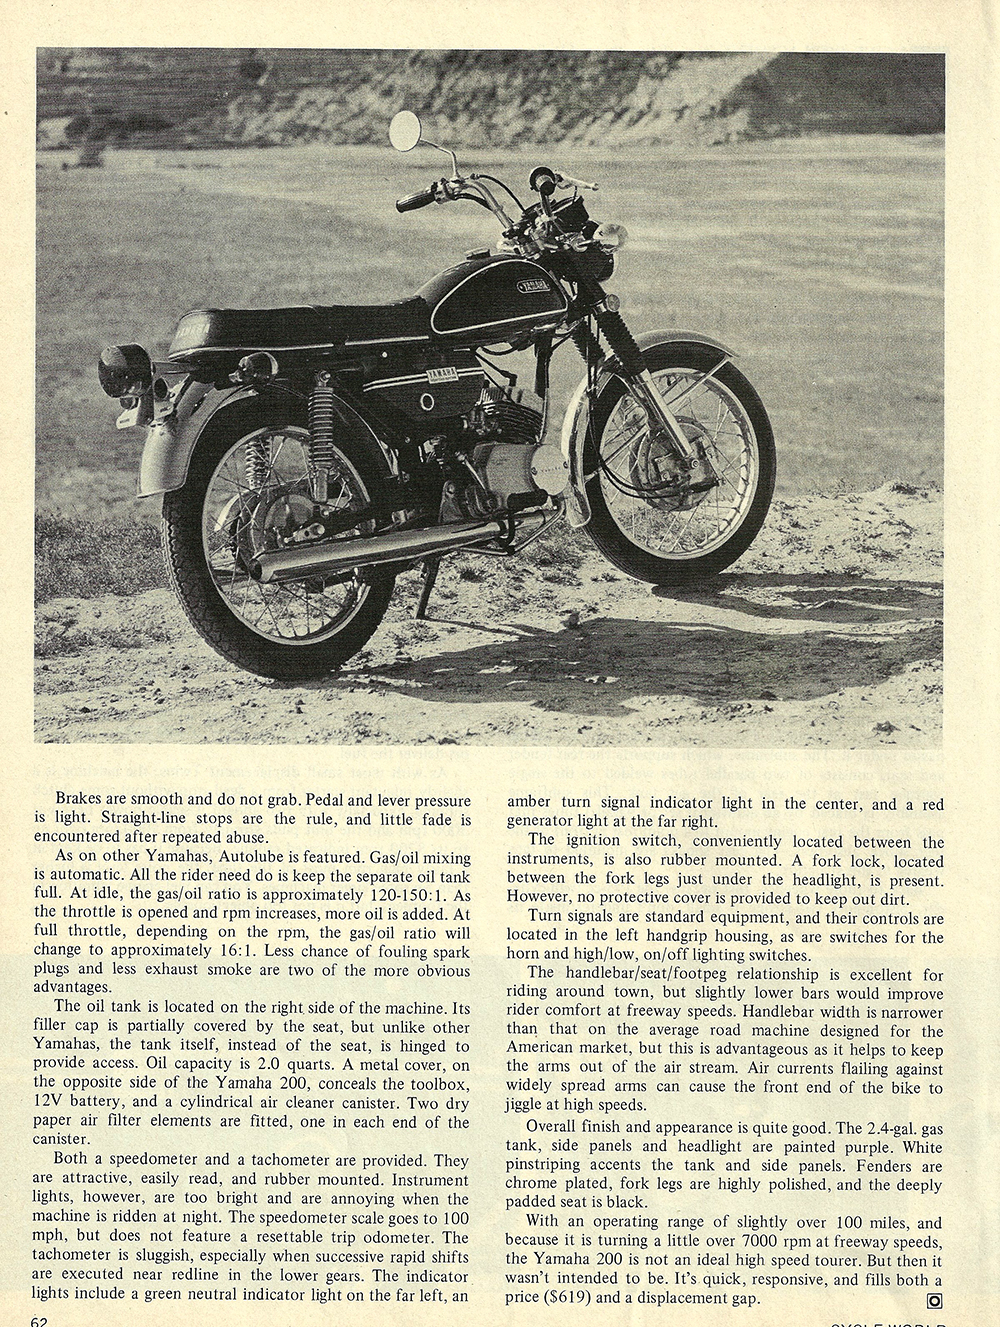 1971 Yamaha 200 CS3B road test 03.jpg